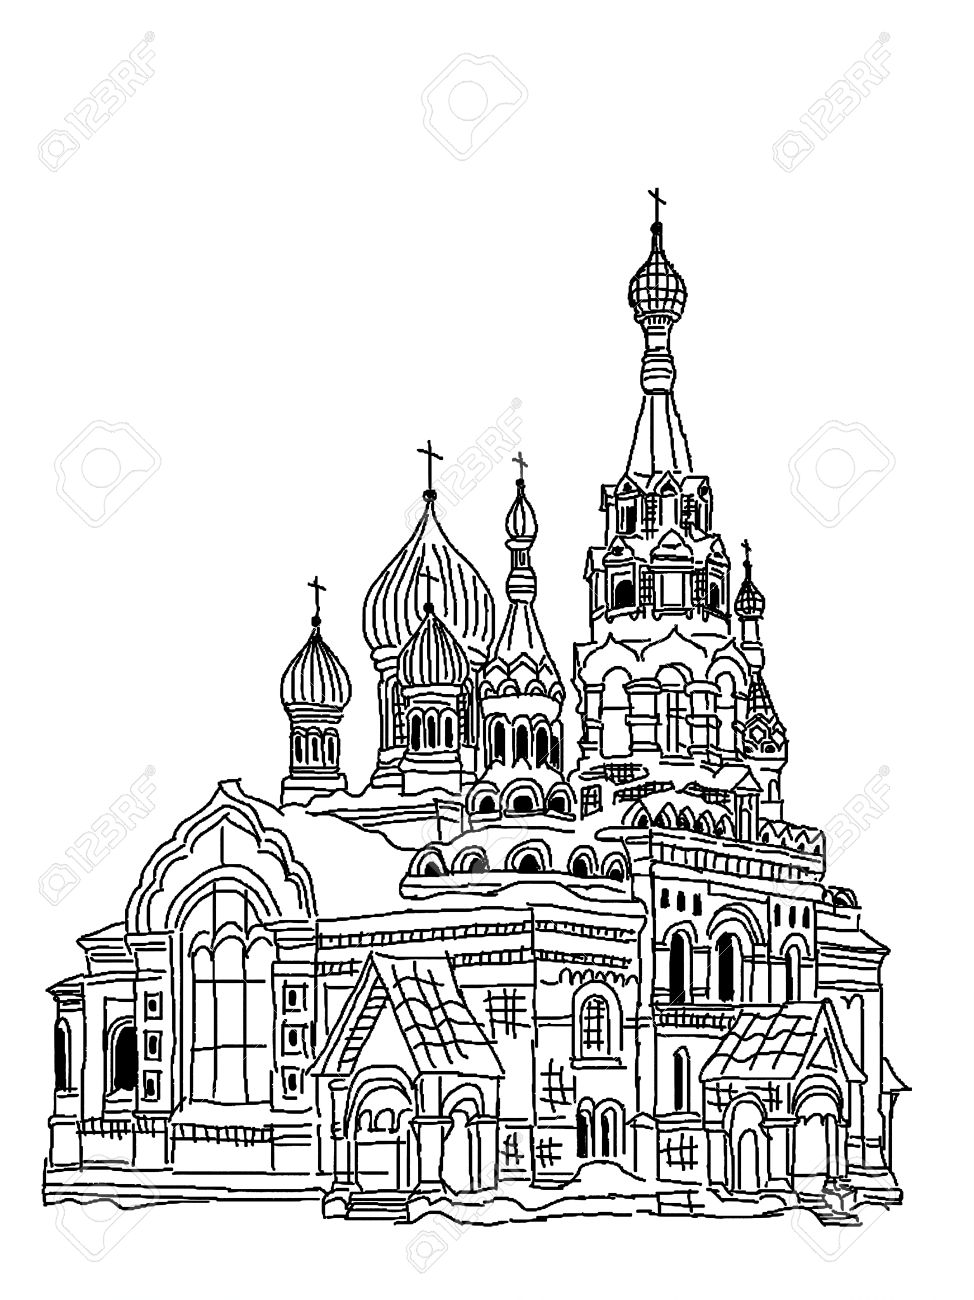 Sketch Of Church Stock Photo, Picture And Royalty Free Image. Image ...